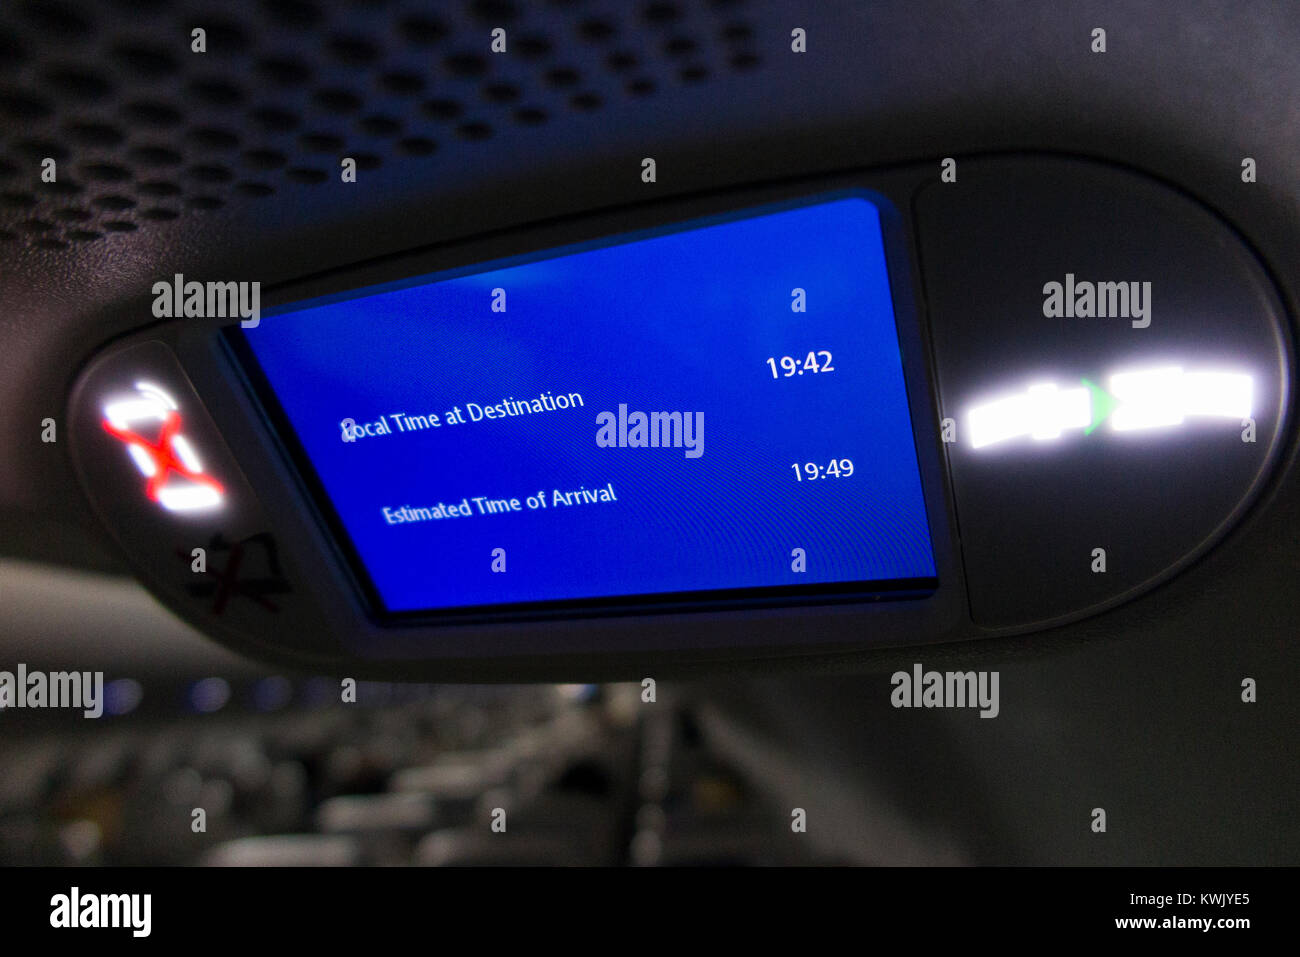 Aeroplane aircraft airplane air plane flight monitor showing travel time & distance & local time at destination Stock Photo